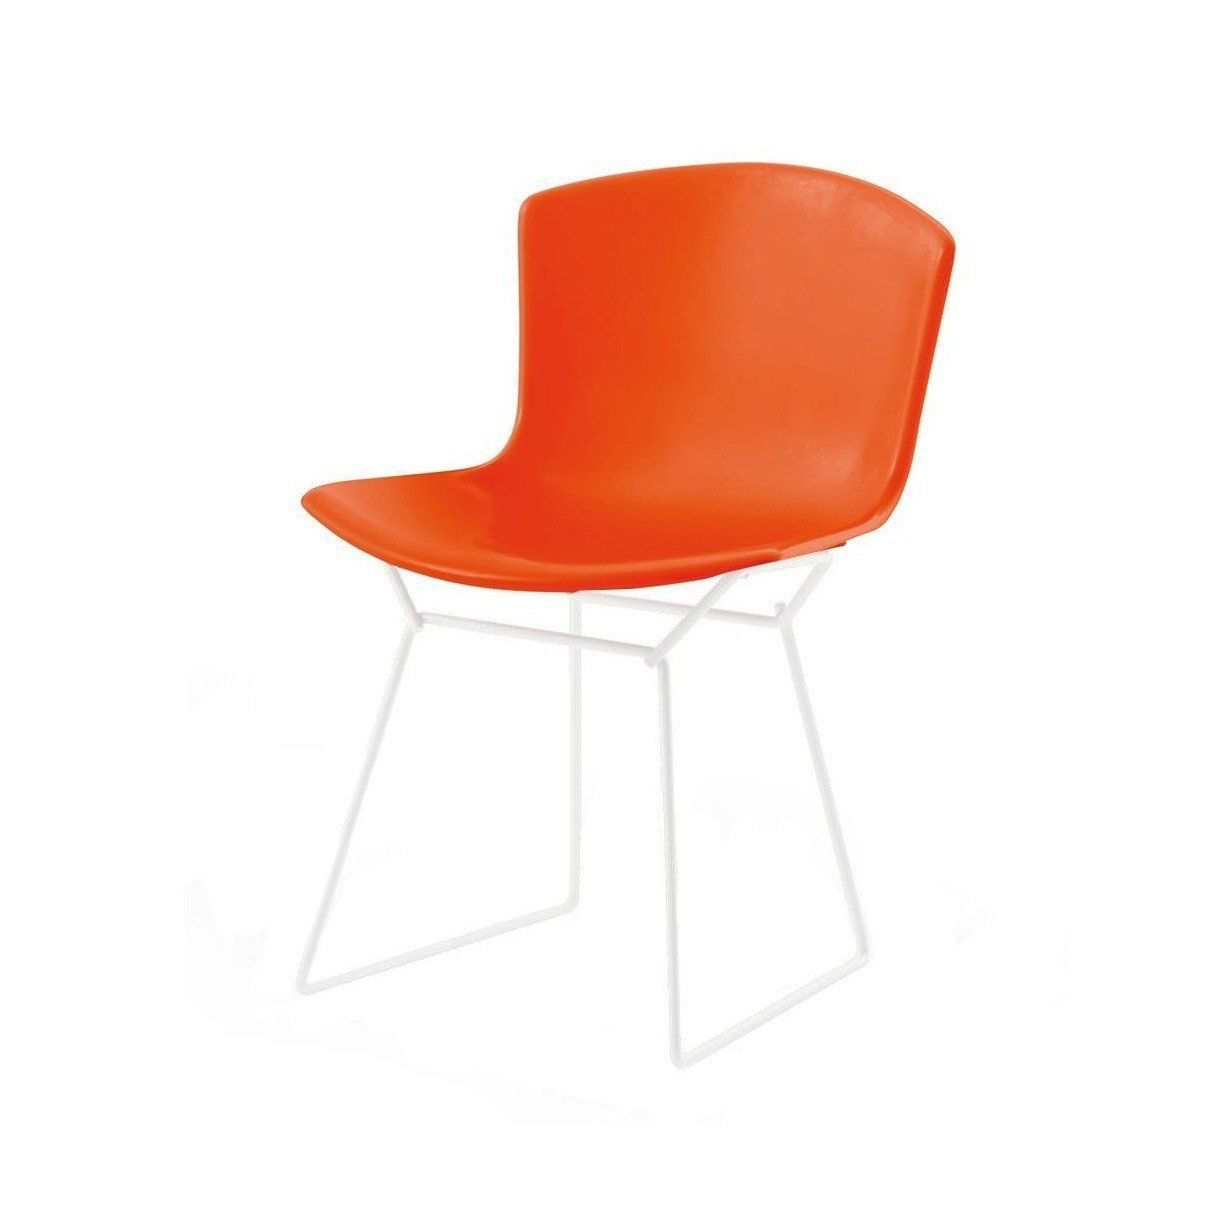 Charmant Knoll International   Bertoia Plastic Side Chair White   Orange ...